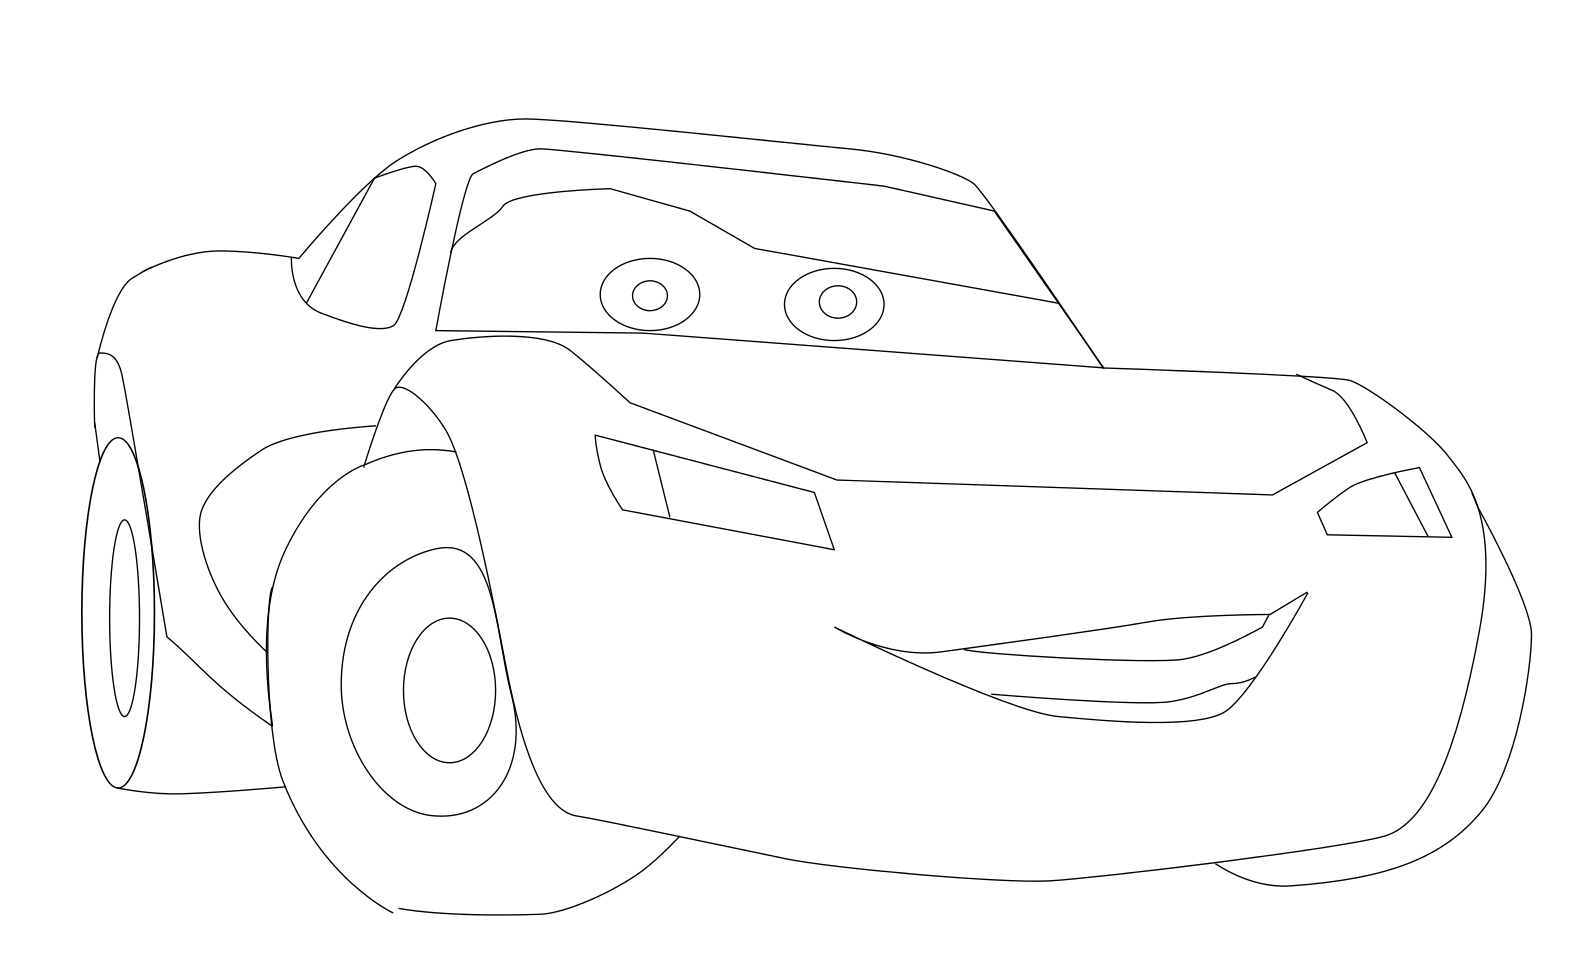 dessin à colorier de voiture flash mcqueen